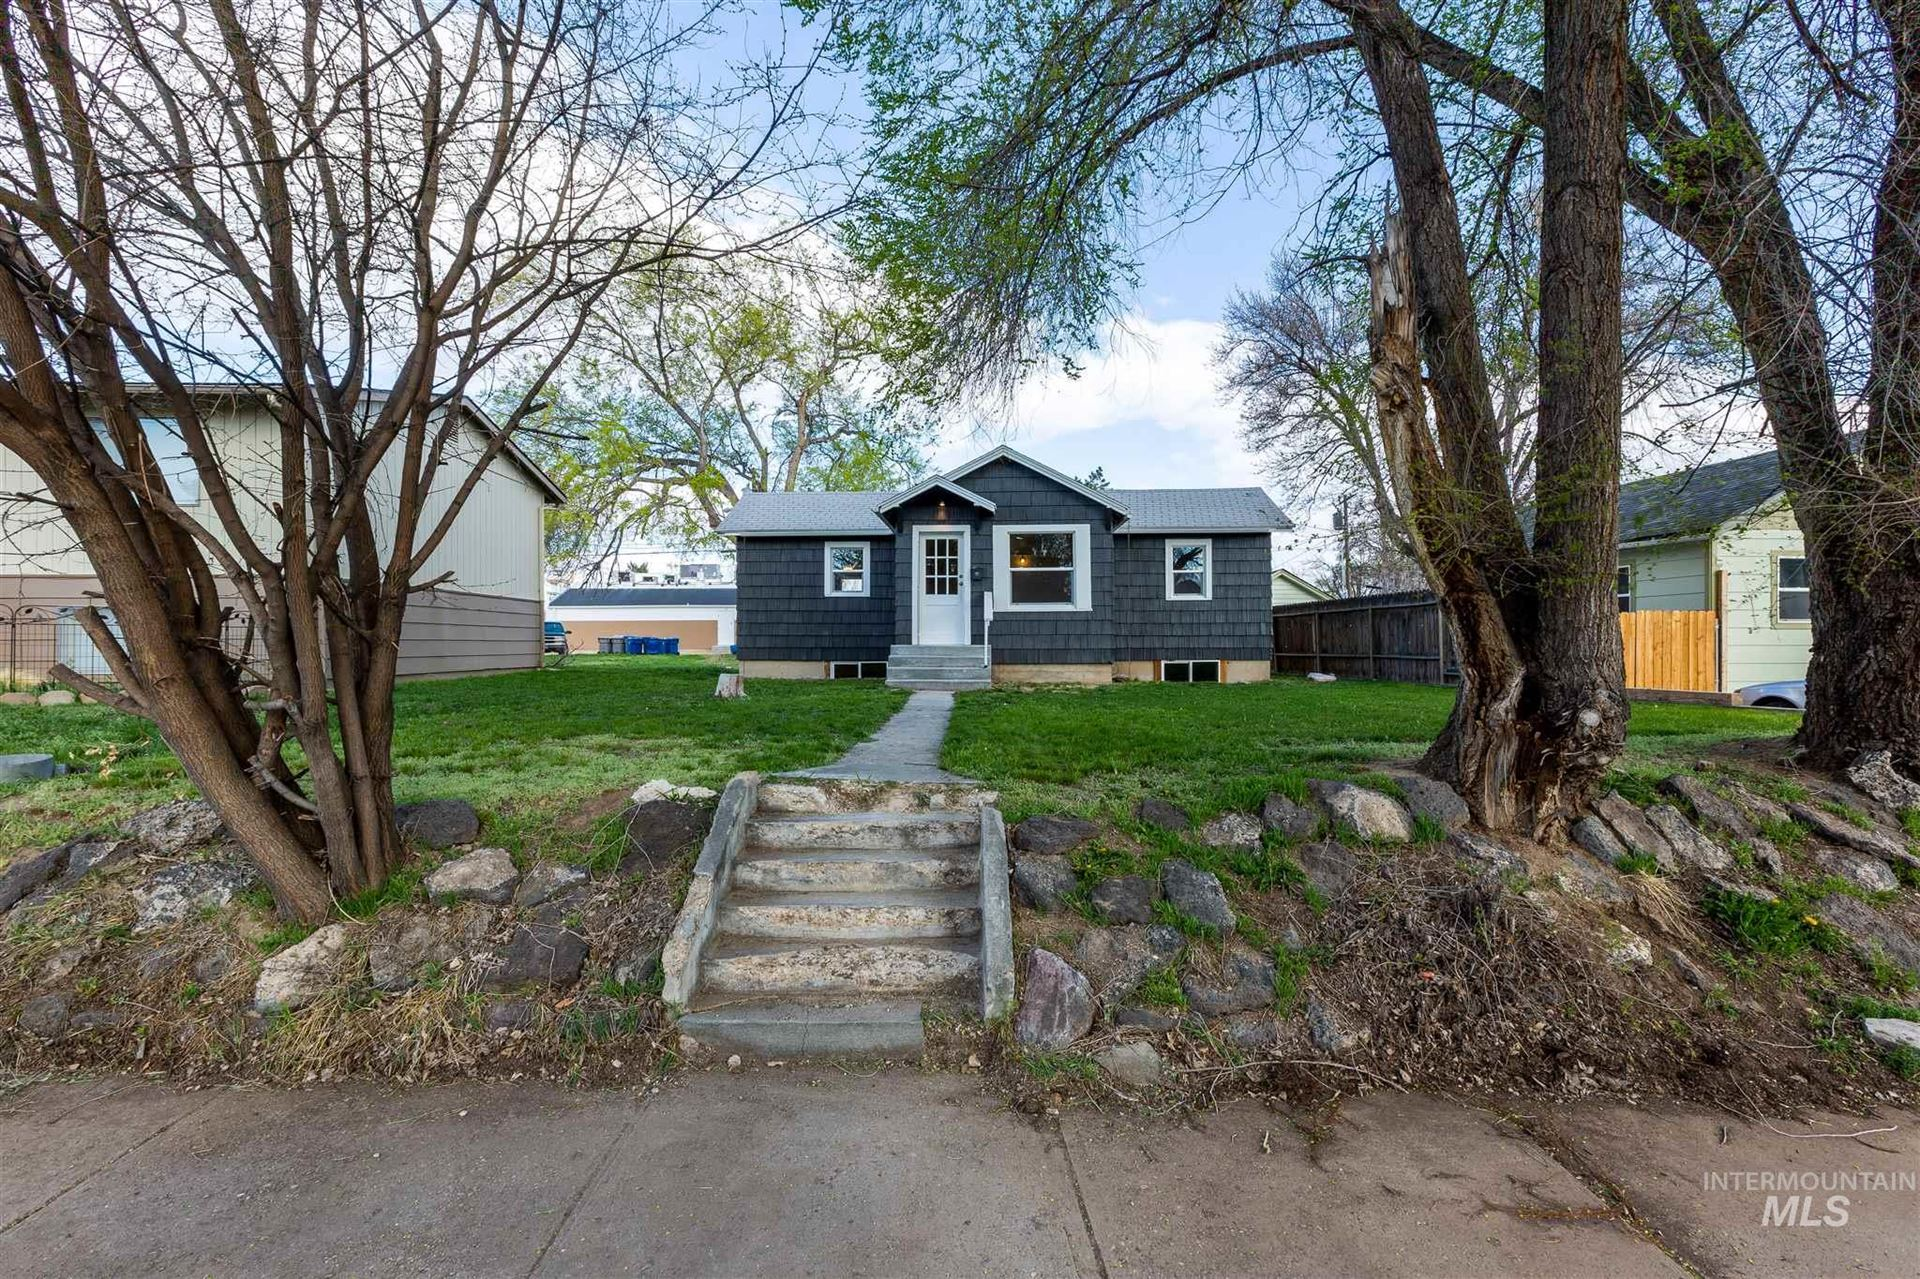 Photo of 215 23rd Ave S, Nampa, ID 83651-4471 (MLS # 98799029)